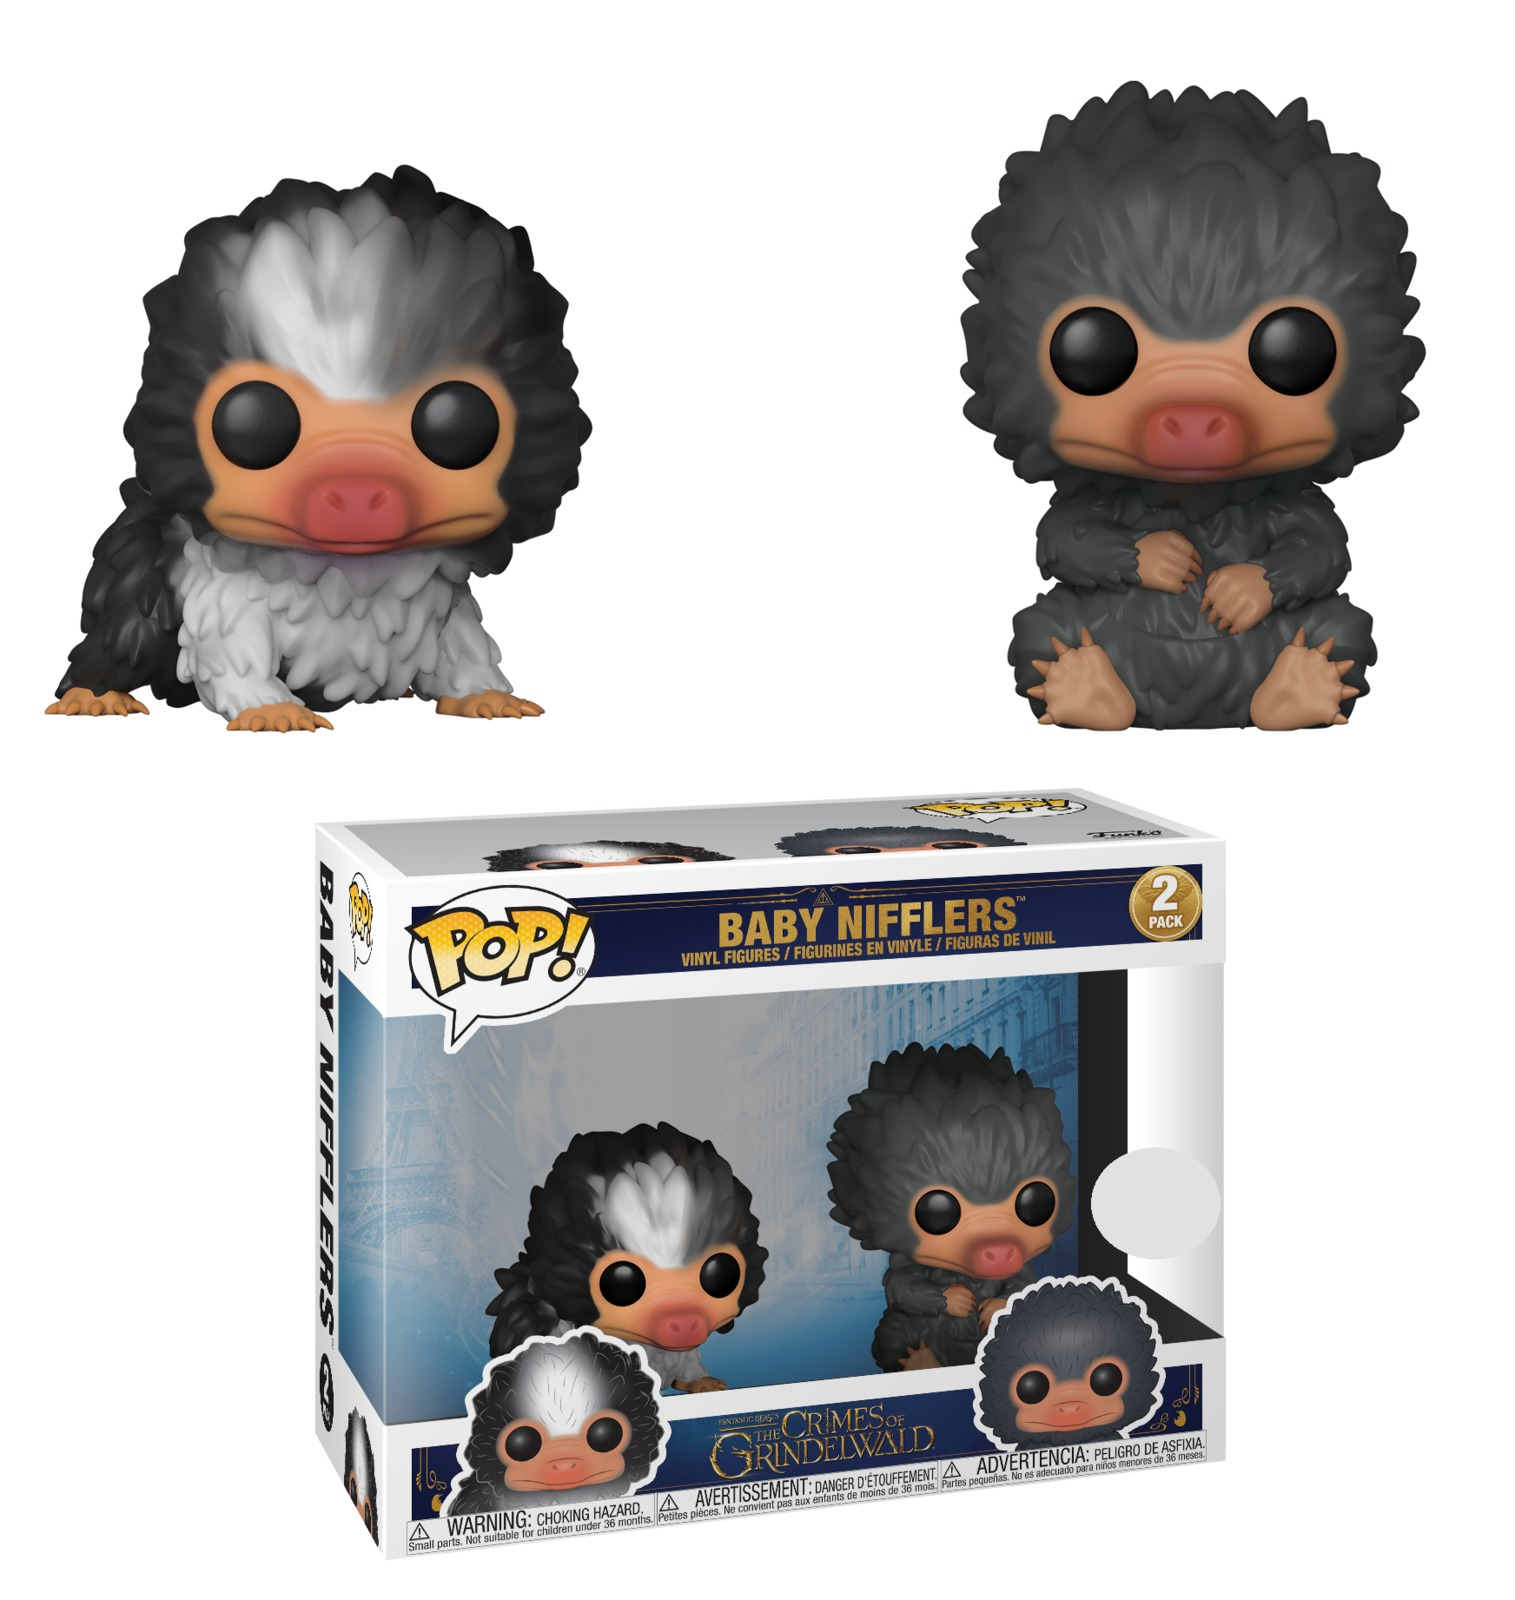 Fantastic Beasts 2 - Baby Nifflers (Black & Grey) Pop! Vinyl 2-Pack image